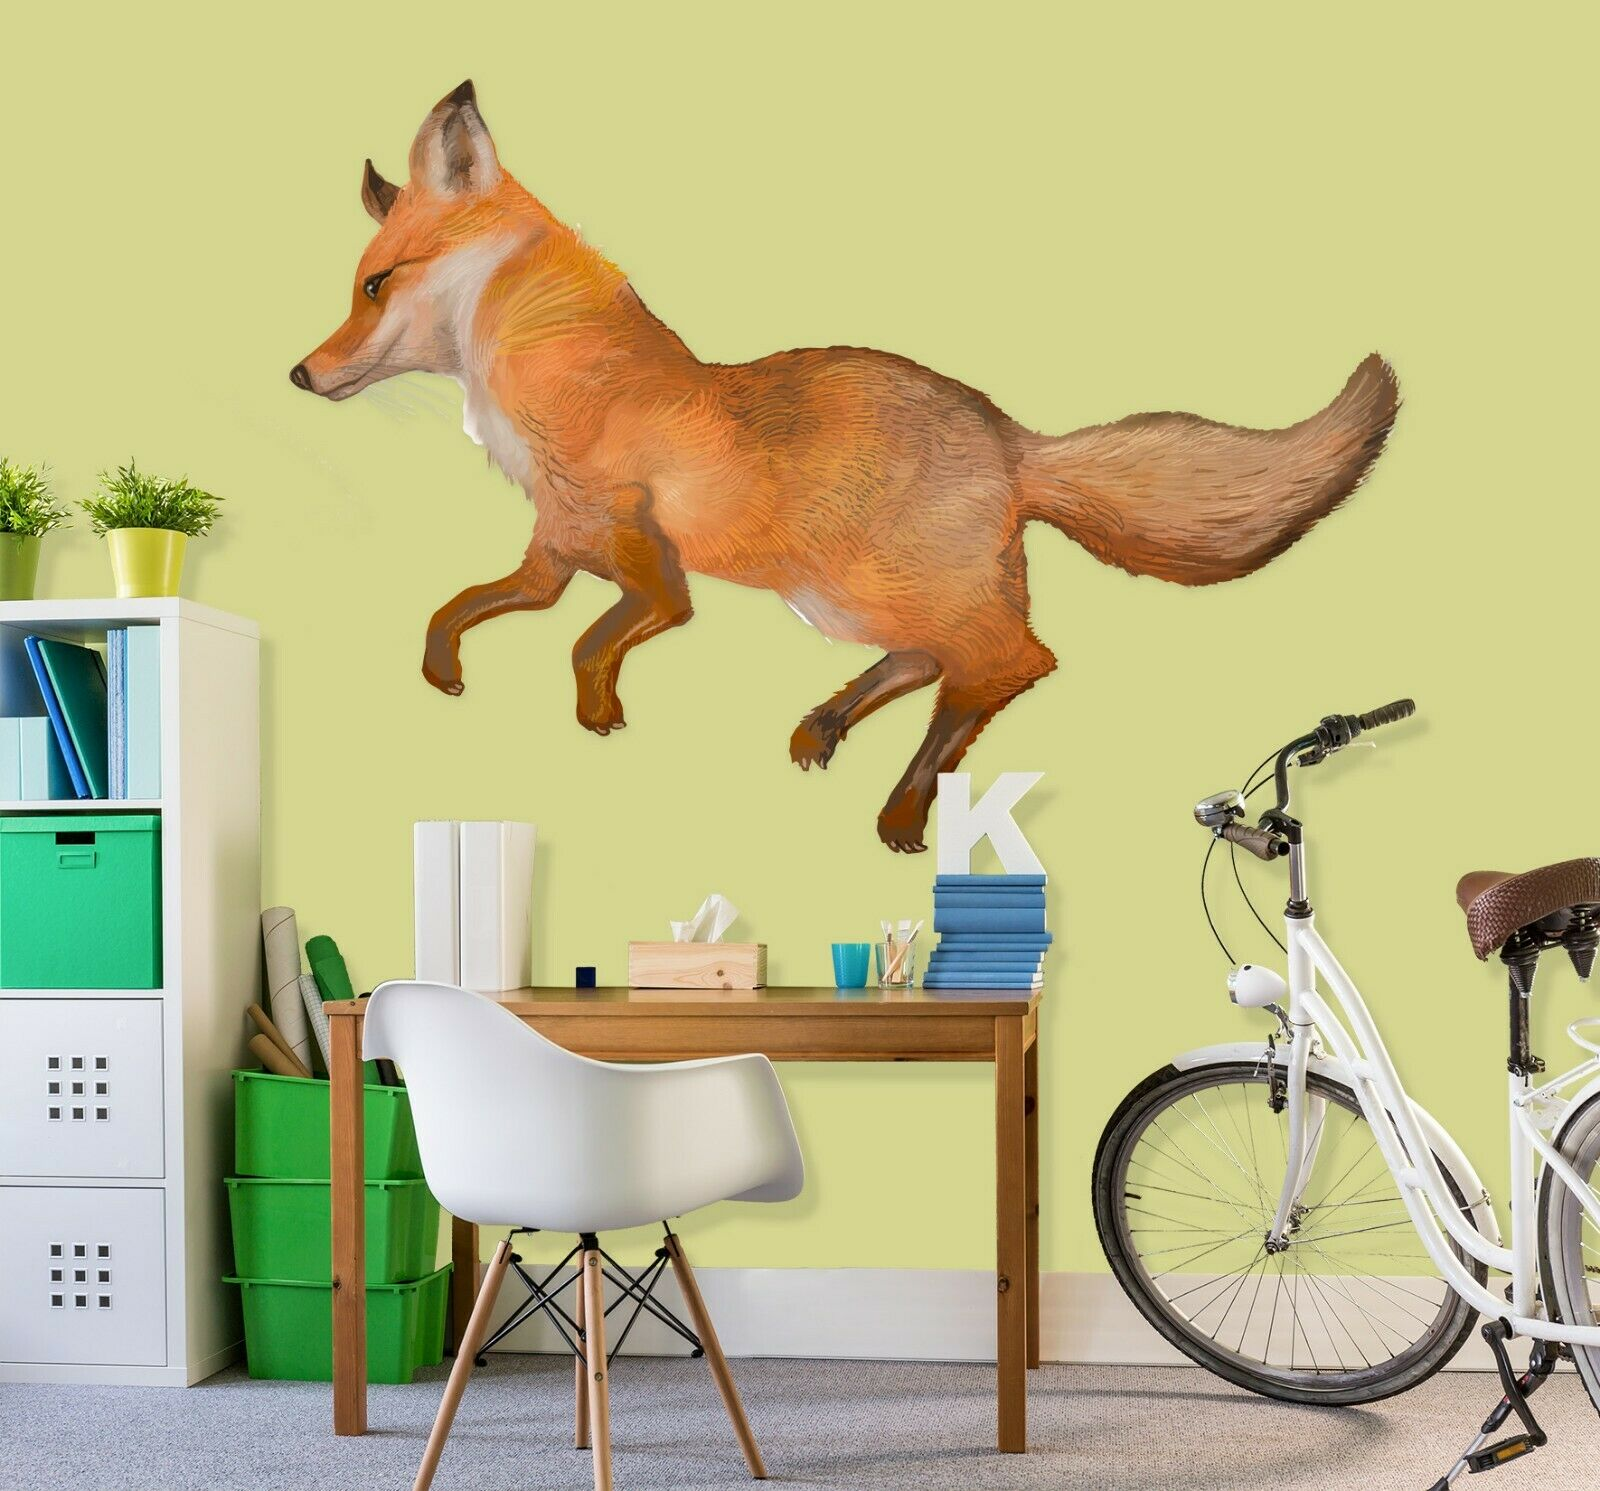 3D  Dog O34 Animal Wallpaper Mural Poster Wall Stickers Decal Angelia